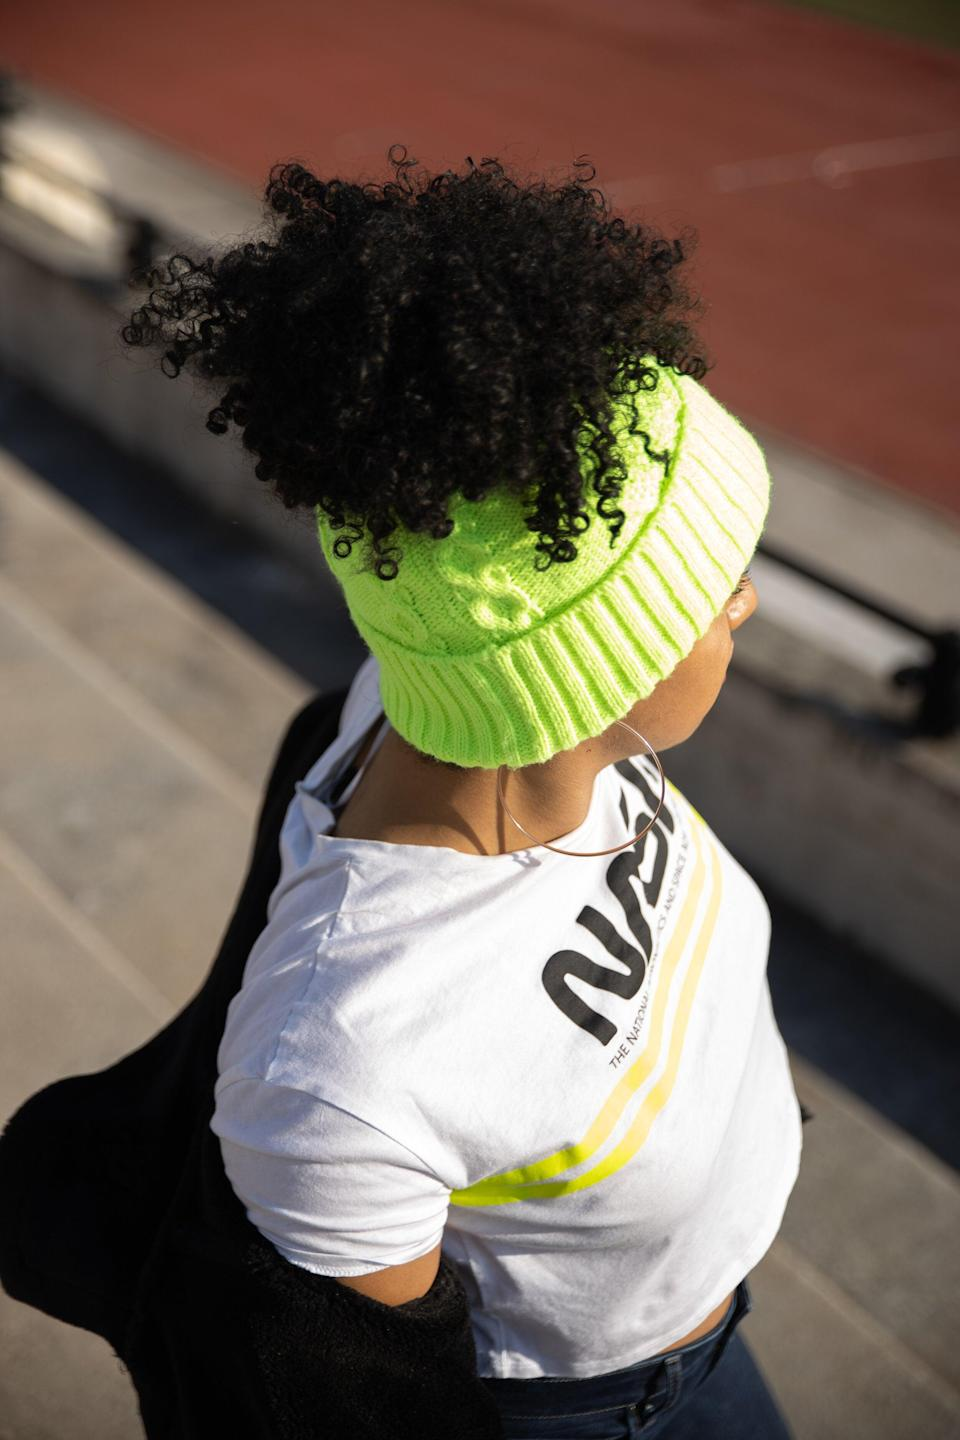 """<h2>Curl Code Bidi Bidi Pom Pom Ponytail Knitted Hat</h2><br>Most knitted beanies aren't designed to accommodate a puff or pineapple, but you shouldn't have to sacrifice your style for your warmth. This Curl Code piece allows you the best of both worlds: It's designed with an opening at the top of the hat for your ponytail to be left out. The inside is also satin-lined, so if you're trying to preserve a sleek bun or curly puff, this hat is your best bet.<br><br><strong>Curl Code</strong> Bidi Bidi Pom Pom Satin Lined Ponytail Knitted Hat, $, available at <a href=""""https://www.curlcode.co/collection/lime-green-knitted-hat"""" rel=""""nofollow noopener"""" target=""""_blank"""" data-ylk=""""slk:Curl Code"""" class=""""link rapid-noclick-resp"""">Curl Code</a>"""